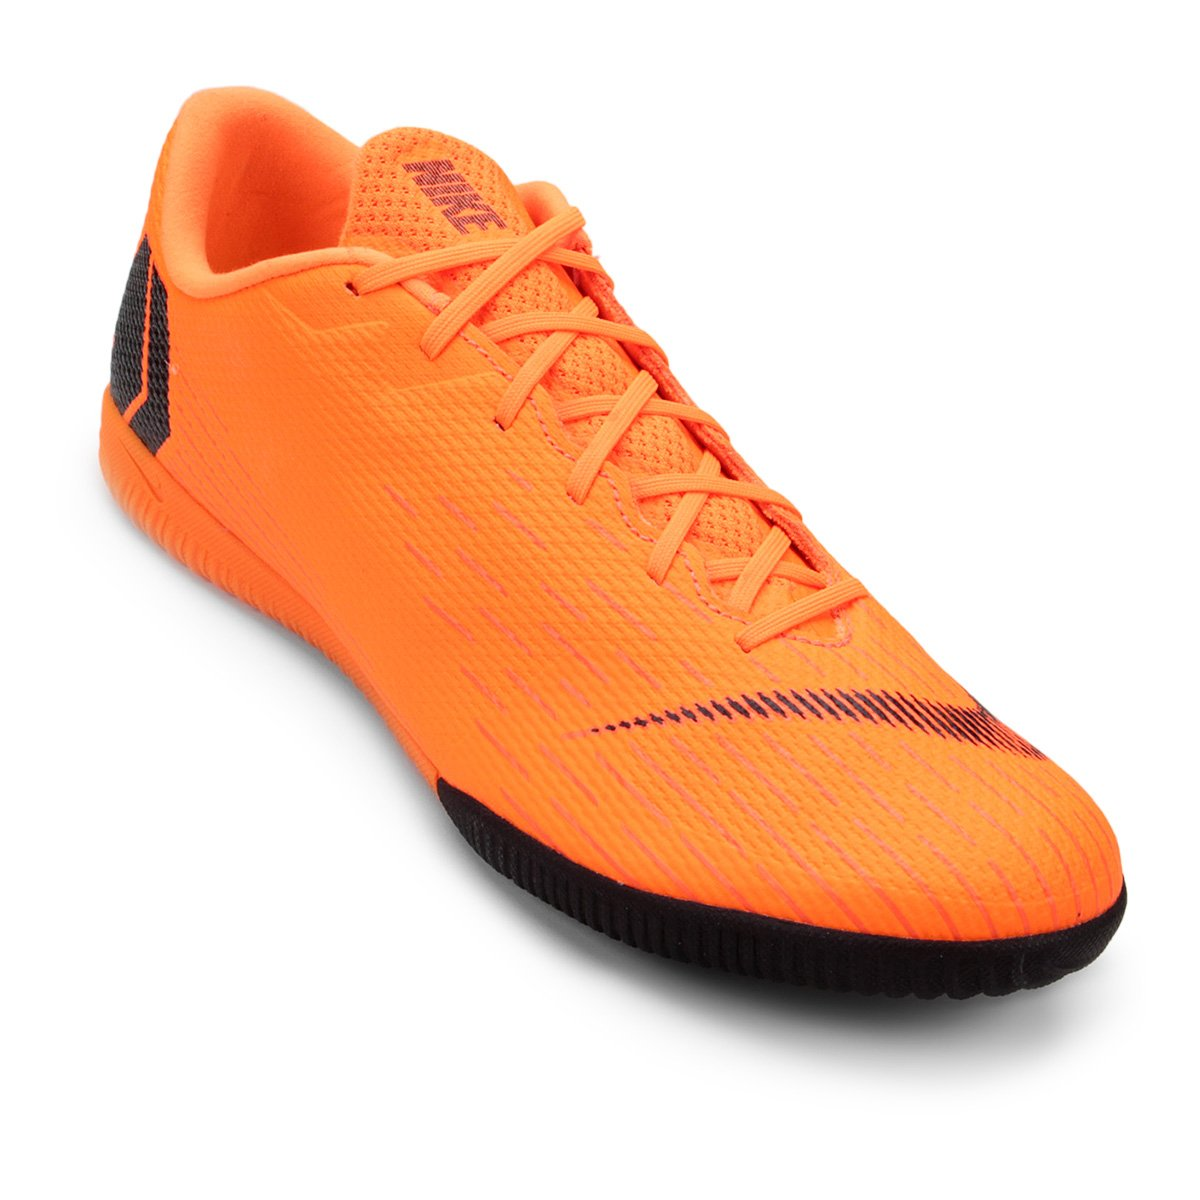 bac5a8e4fb819 ... ic 651635 9d62d da854 where to buy chuteira futsal nike mercurial vapor  12 academy masculina de9a1 57096 ...